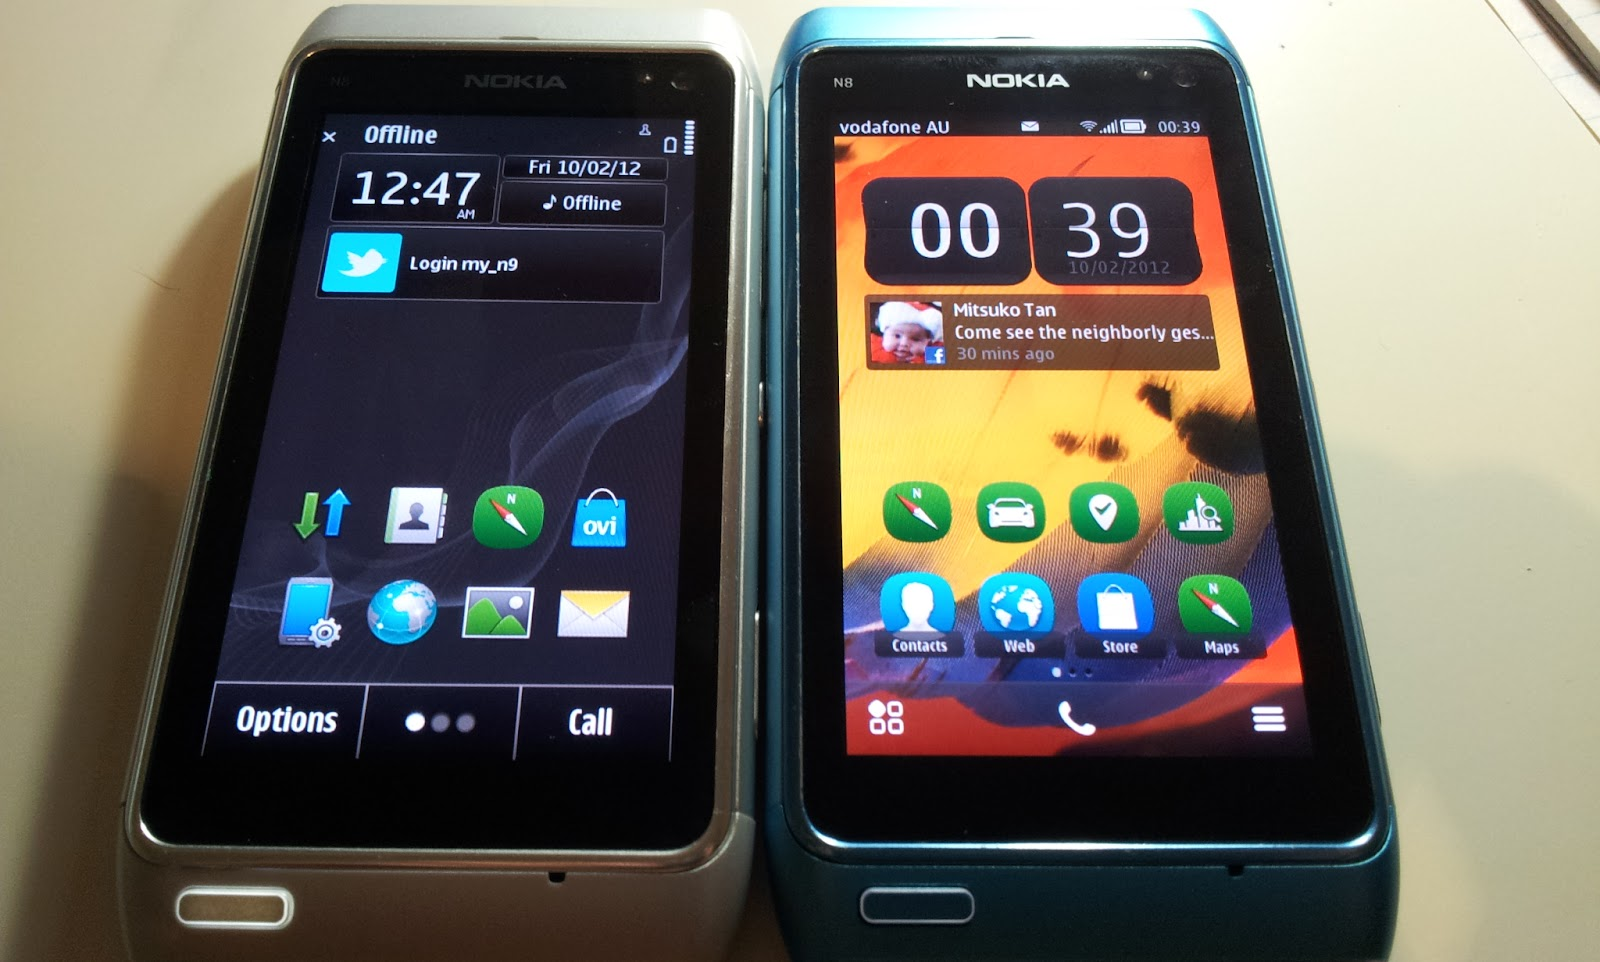 The Top 10 HD Symbian games